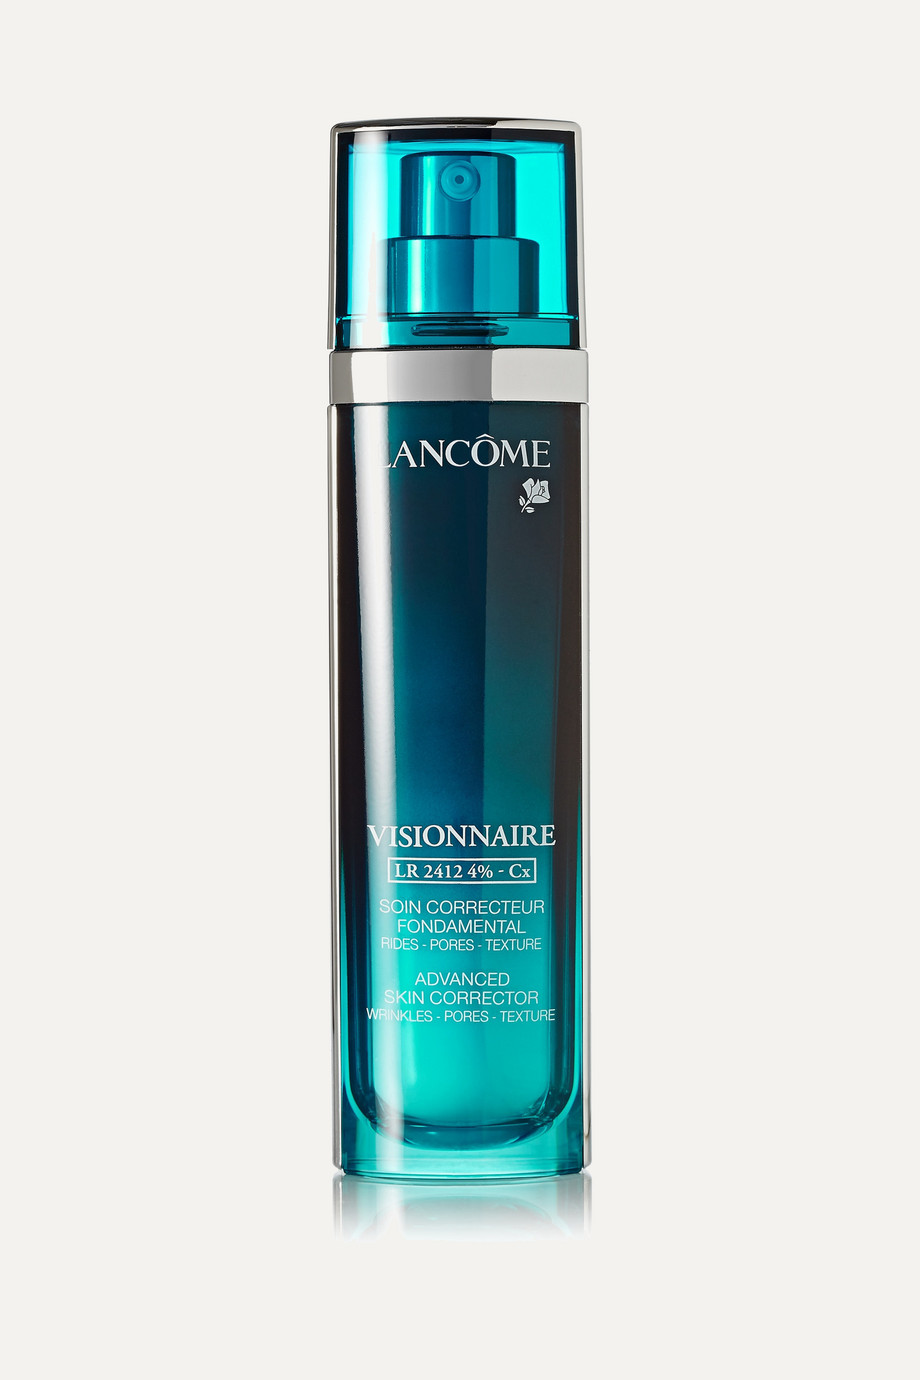 Visionnaire Advanced Skin Corrector, 30ml, by Lancôme